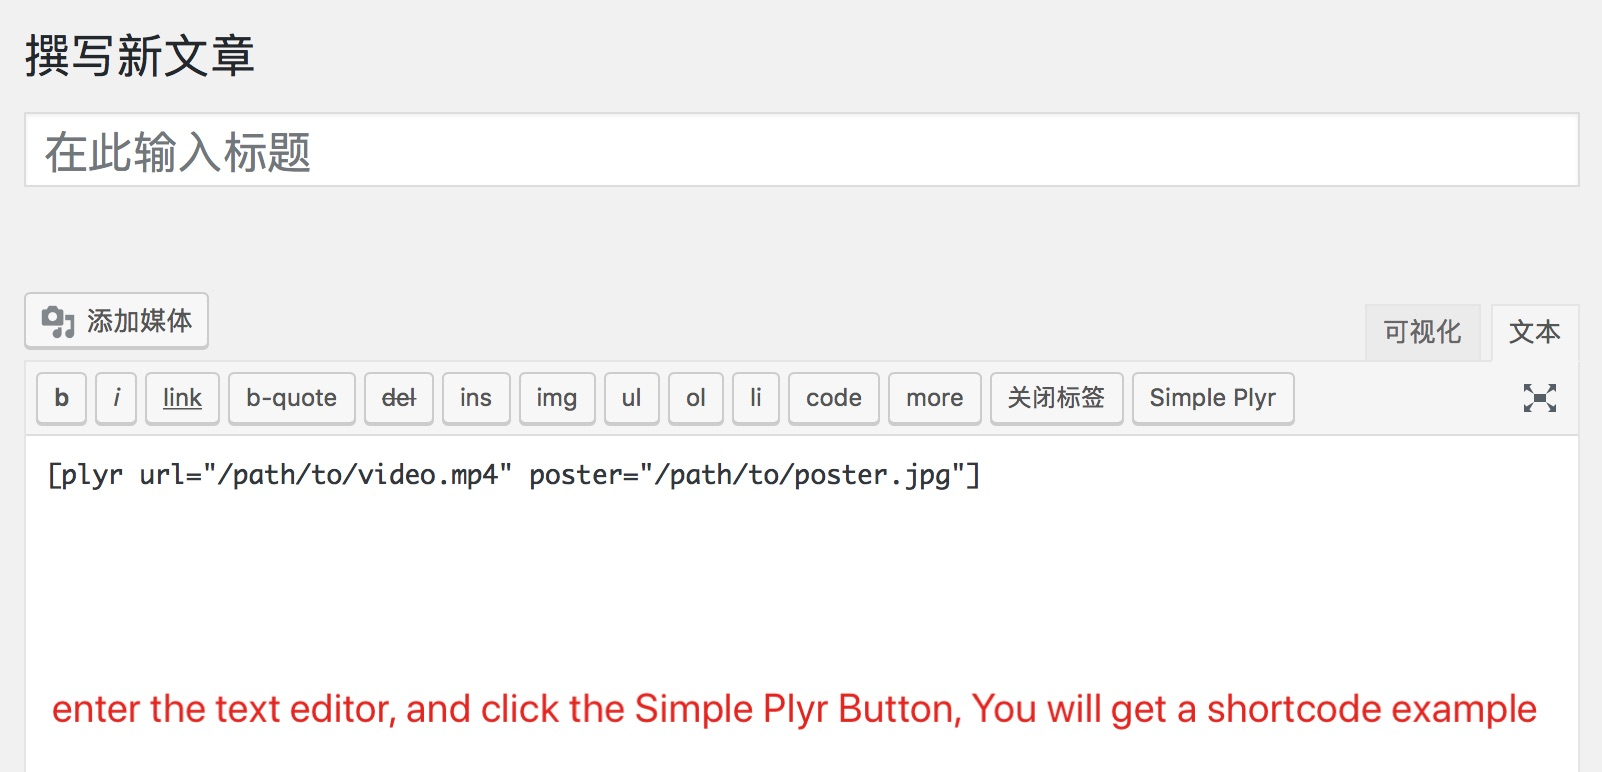 Or You can use the text editor to quick add the shortcode.